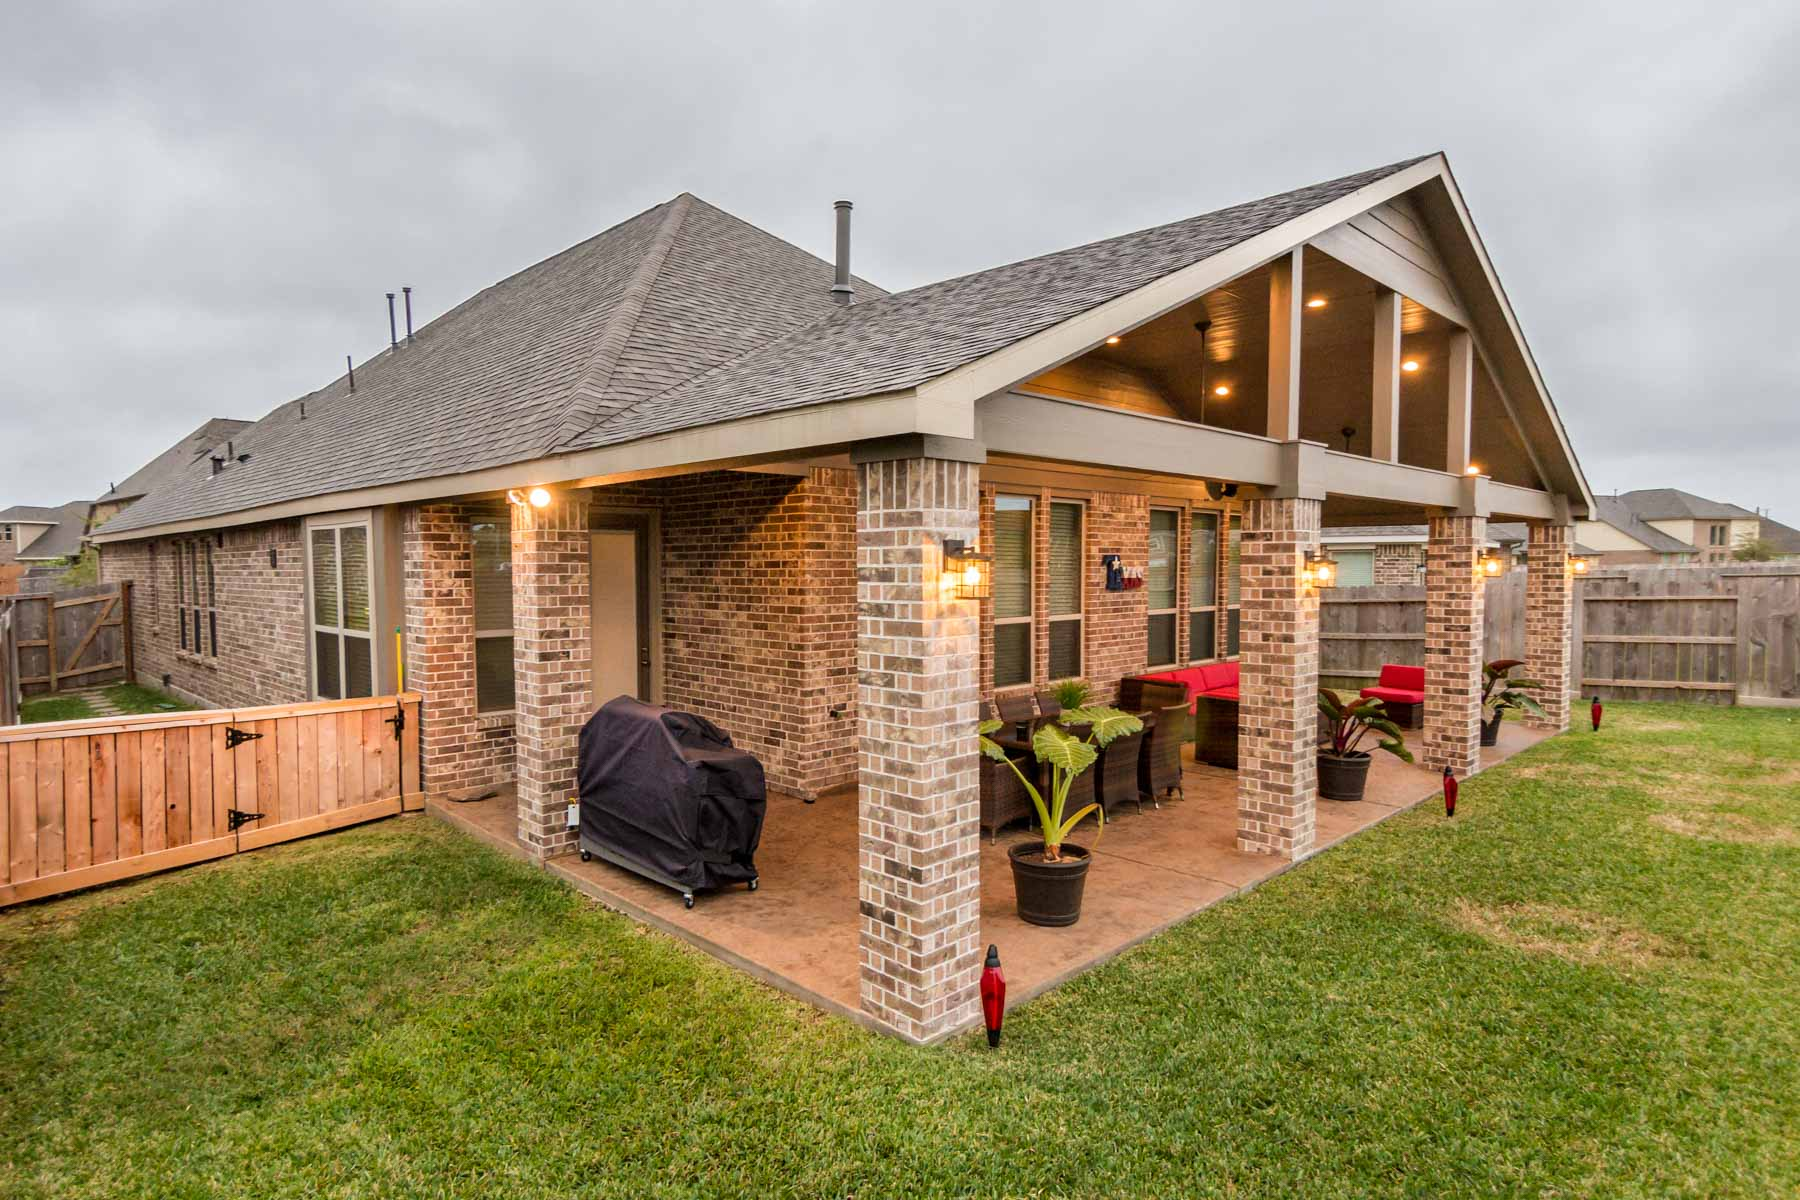 Gable Roof Patio Cover in Cypress Texas - HHI Patio Covers on Backyard Patio Covers  id=14029